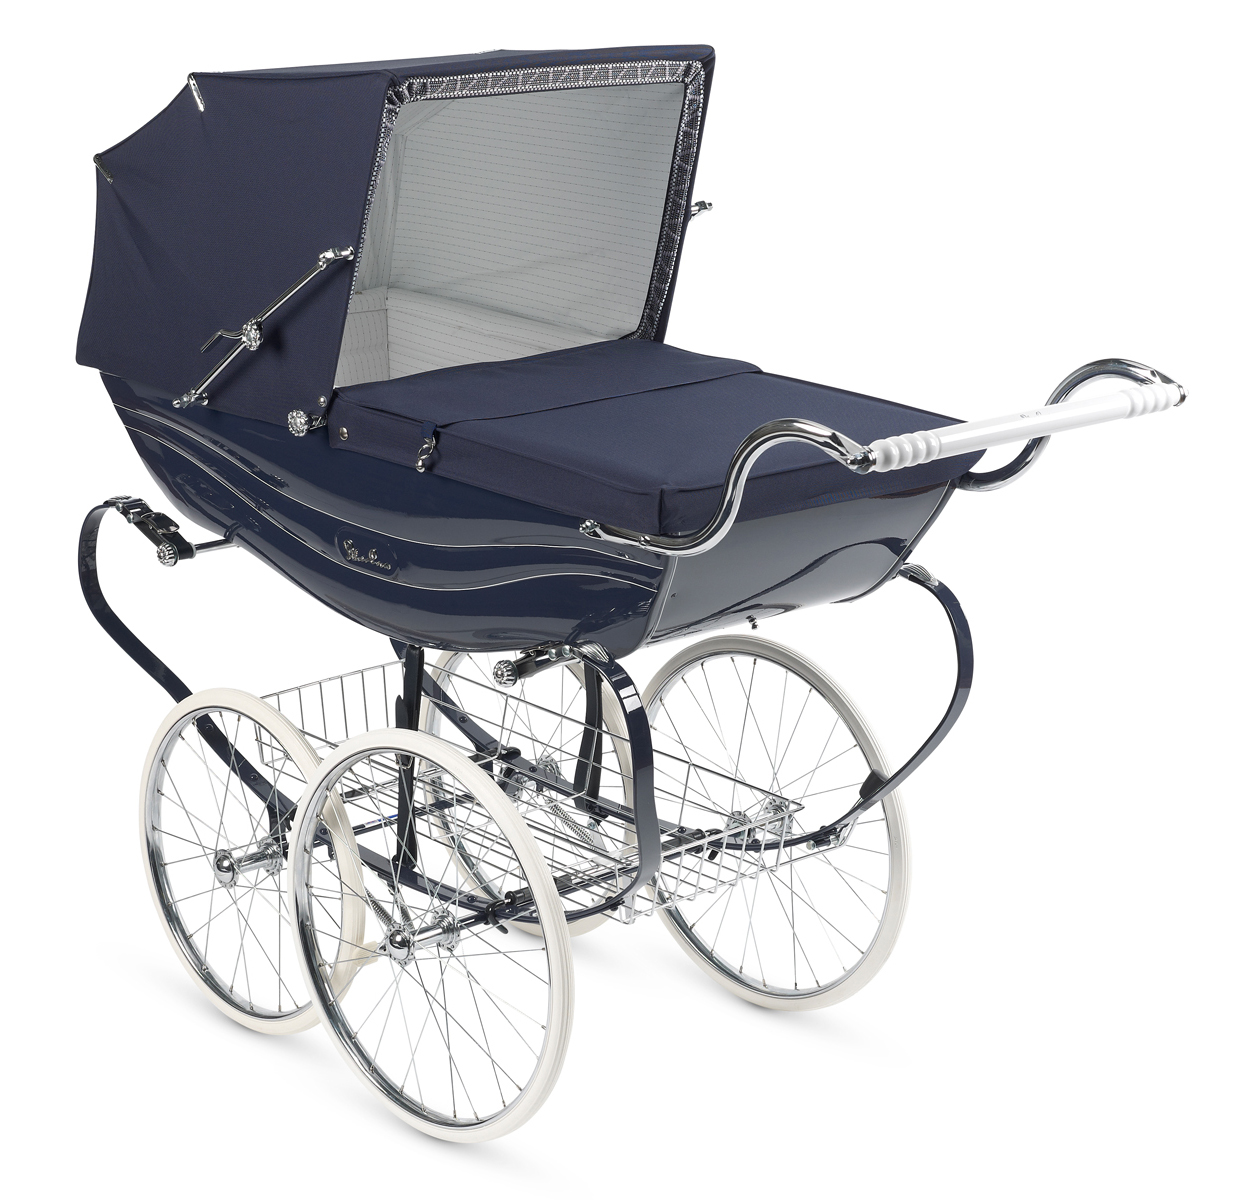 A Silver Cross pram. Image, Silver Cross, Wikimedia, Creative Commons 3.0.